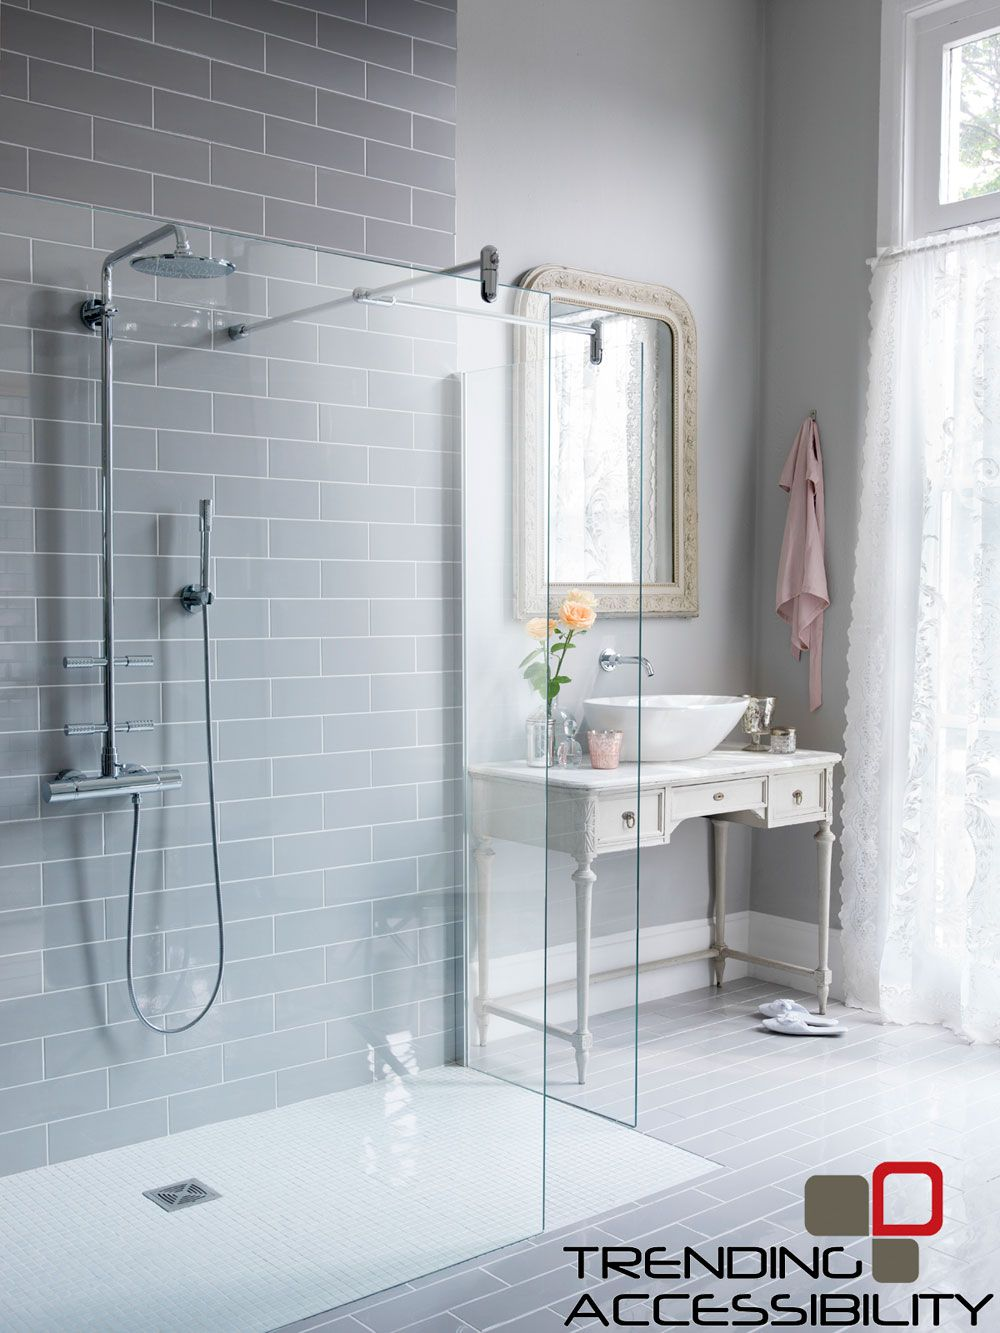 Image result for accessible shower